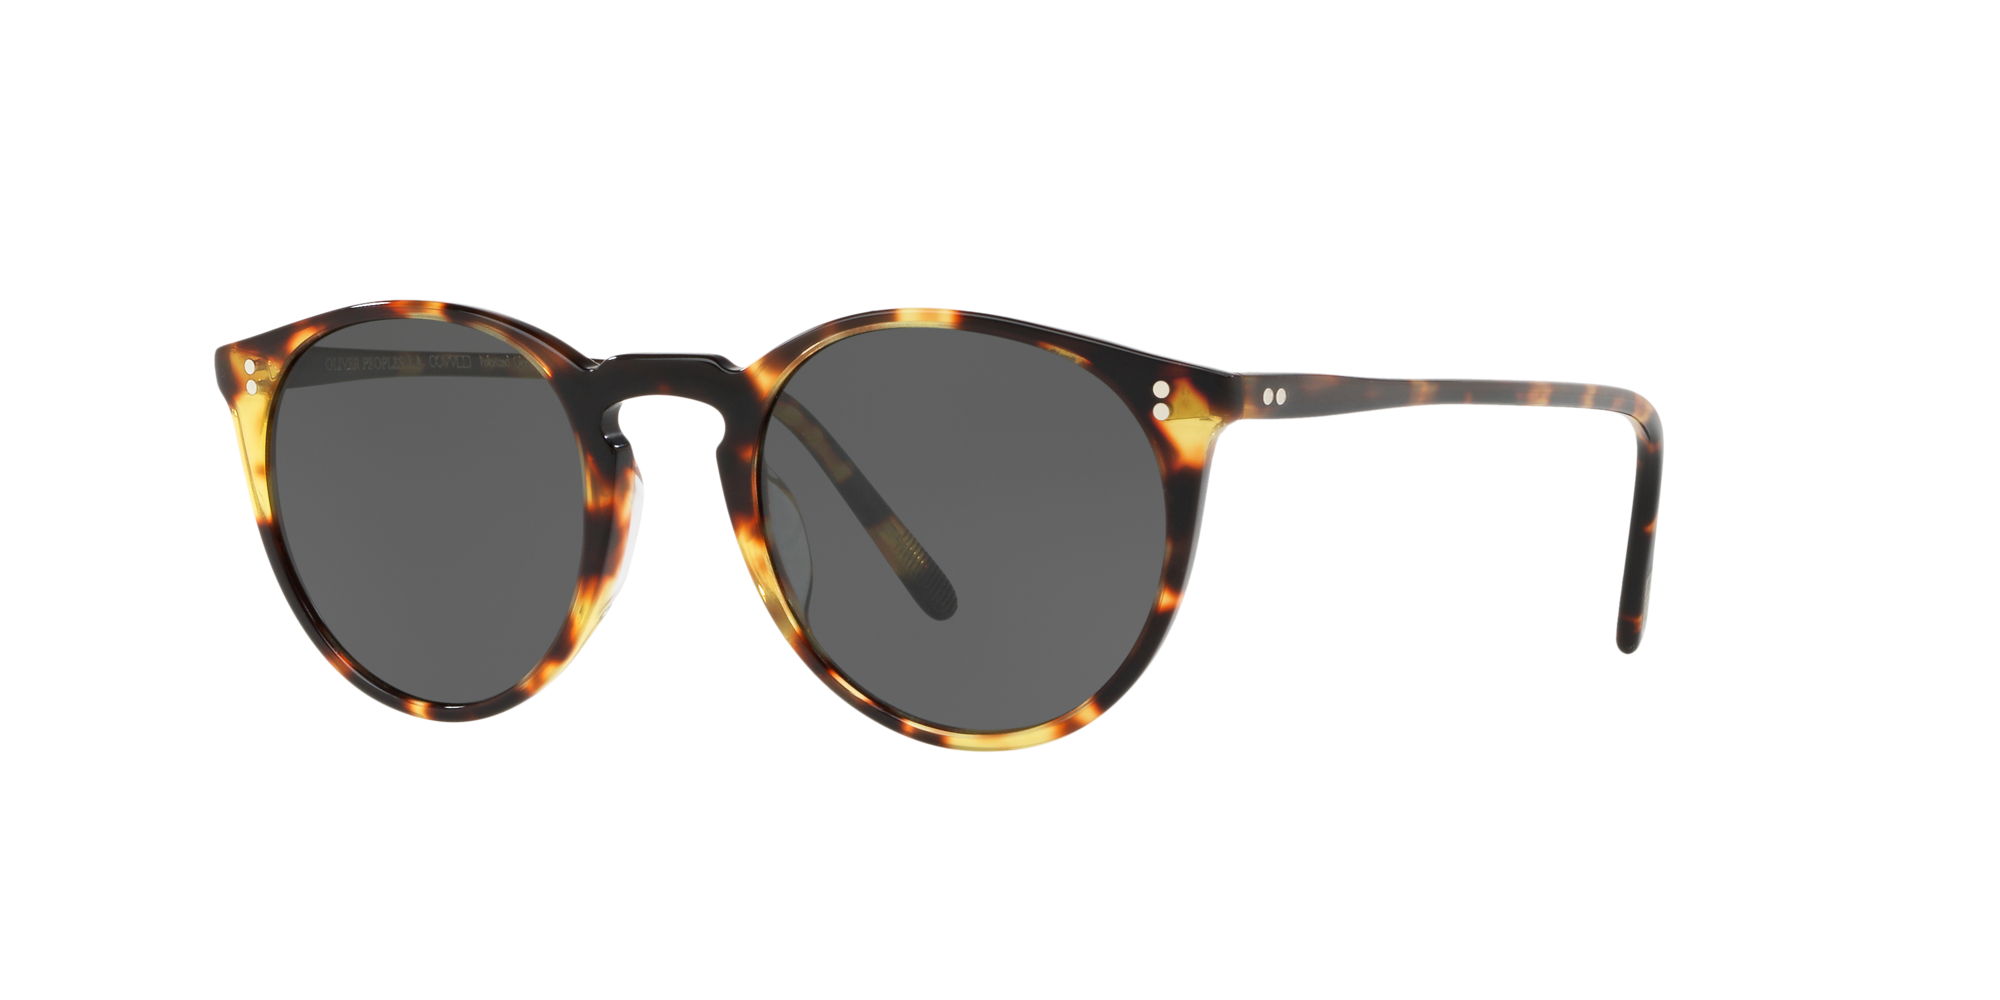 Oliver Peoples Unisex  OV5183S OMALLEY SUN -  Frame color: Habana, Lens color: Gris-Negro, Size 48-22/145